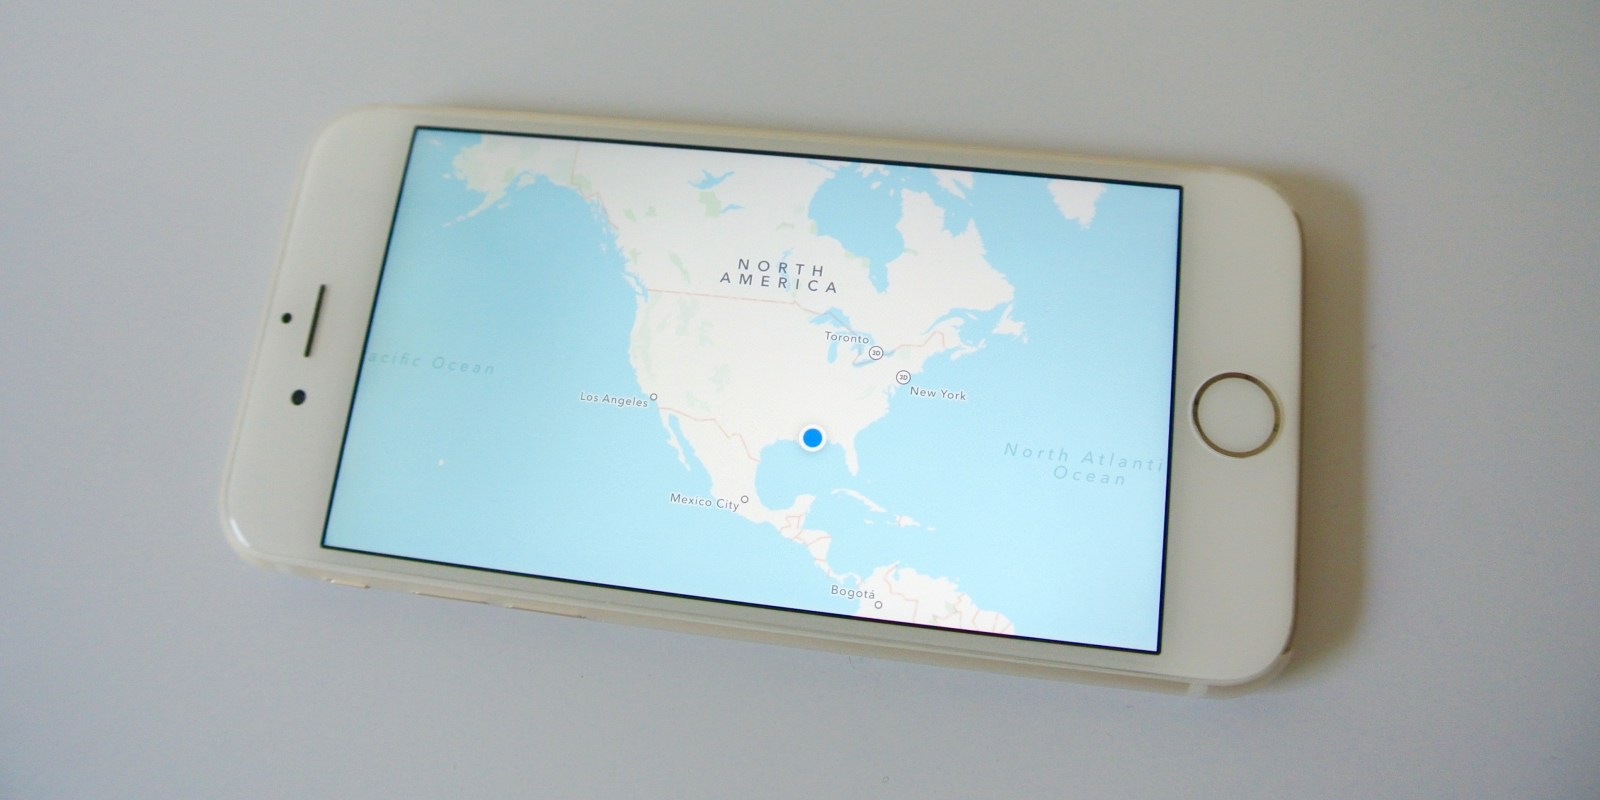 Apple reveals data sources for transit directions in Maps on iOS 9